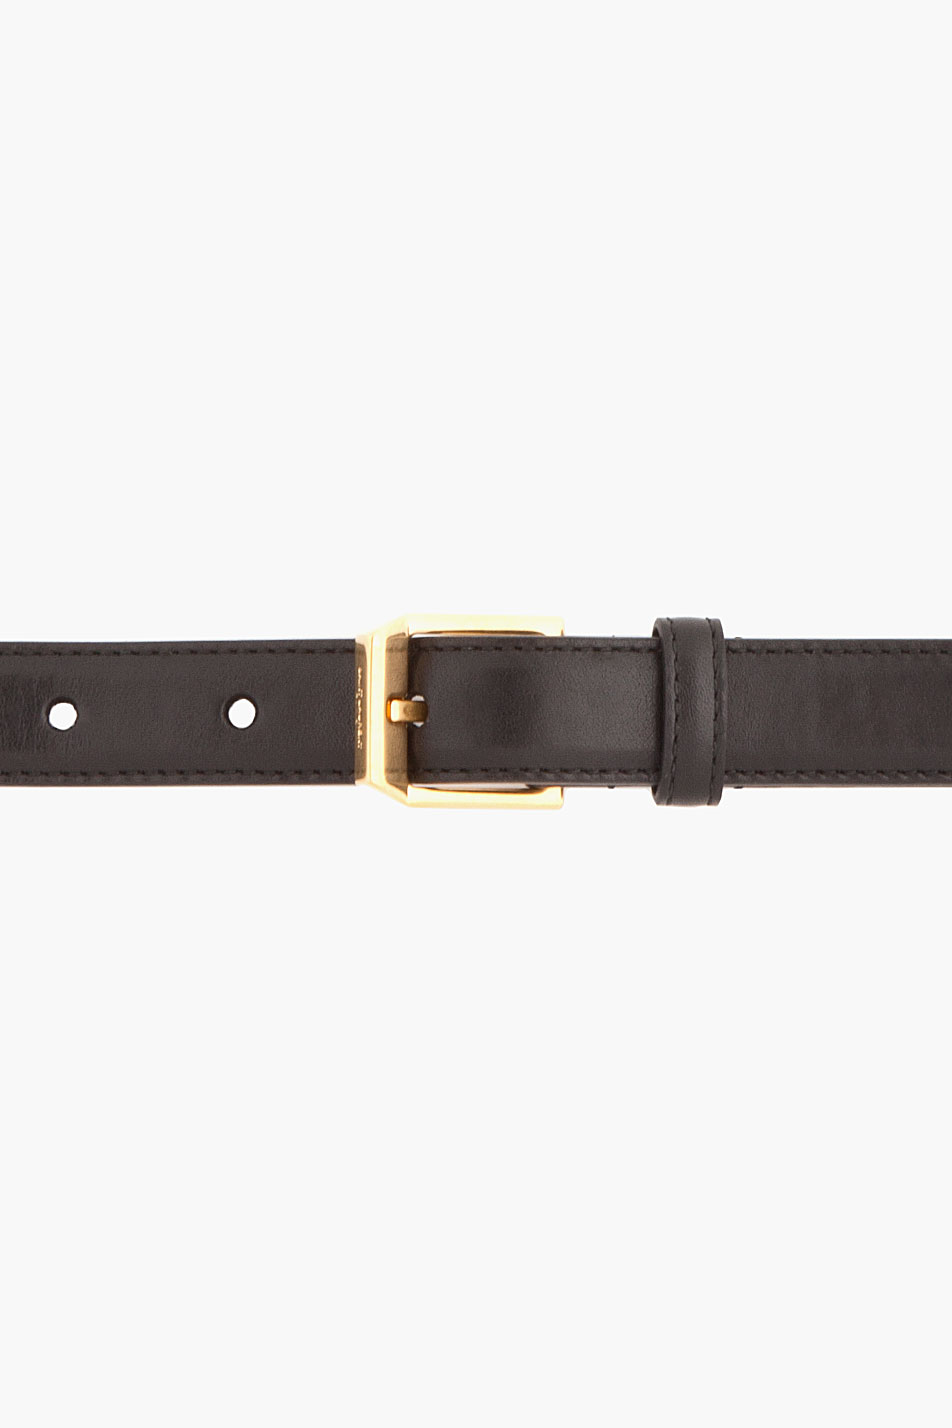 Saint Laurent black leather gold studded bolt belt